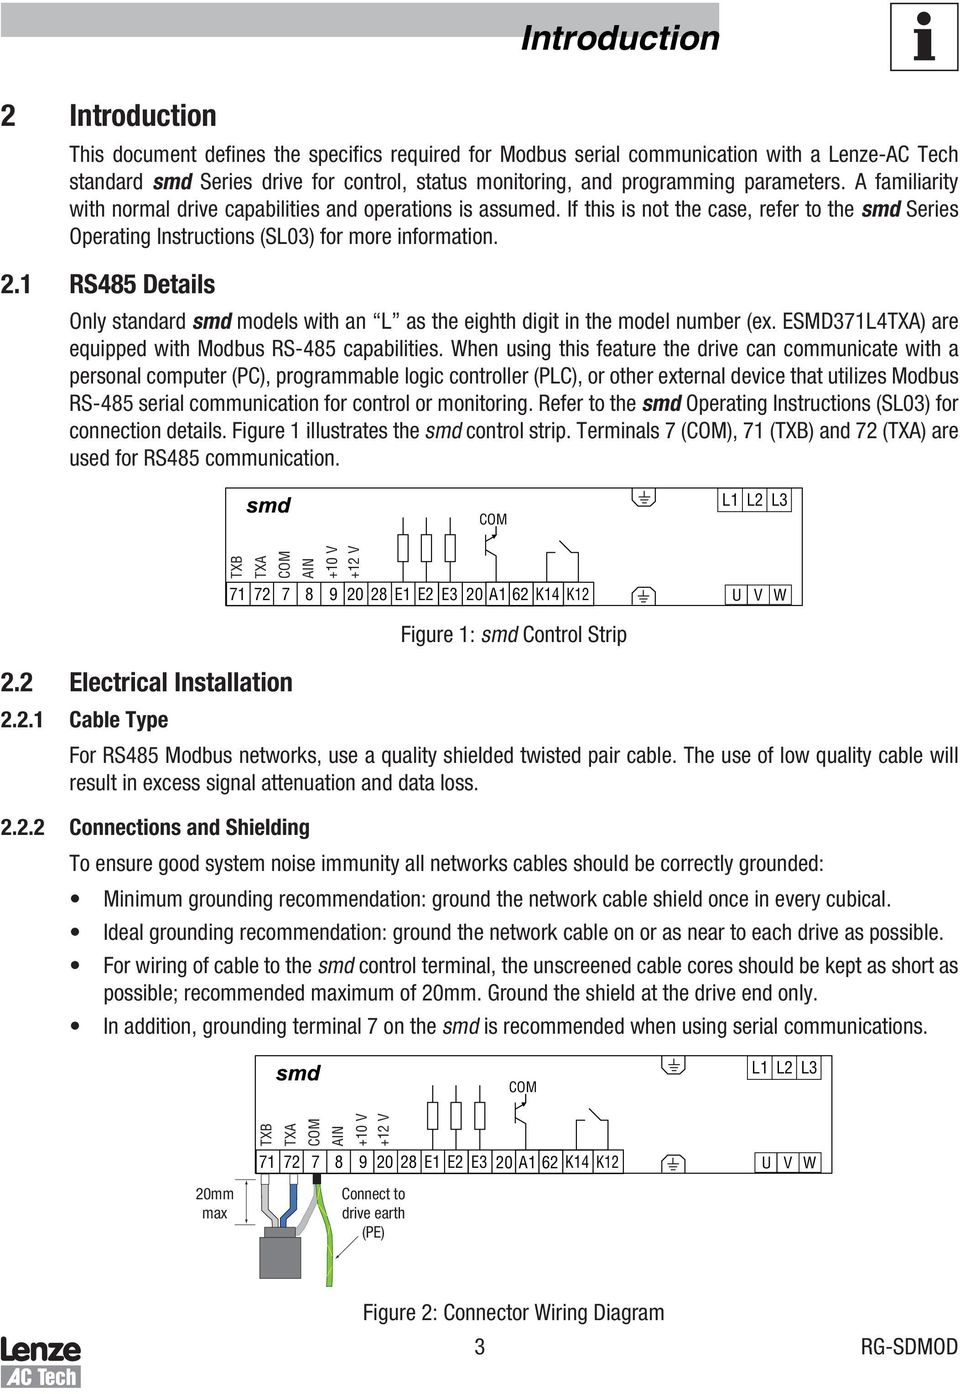 Smd Series Drives Modbus Communications Reference Guide Pdf Lenze Wiring Diagrams 1 Rs485 Details Only Standard Models With An L As The Eighth Digit In